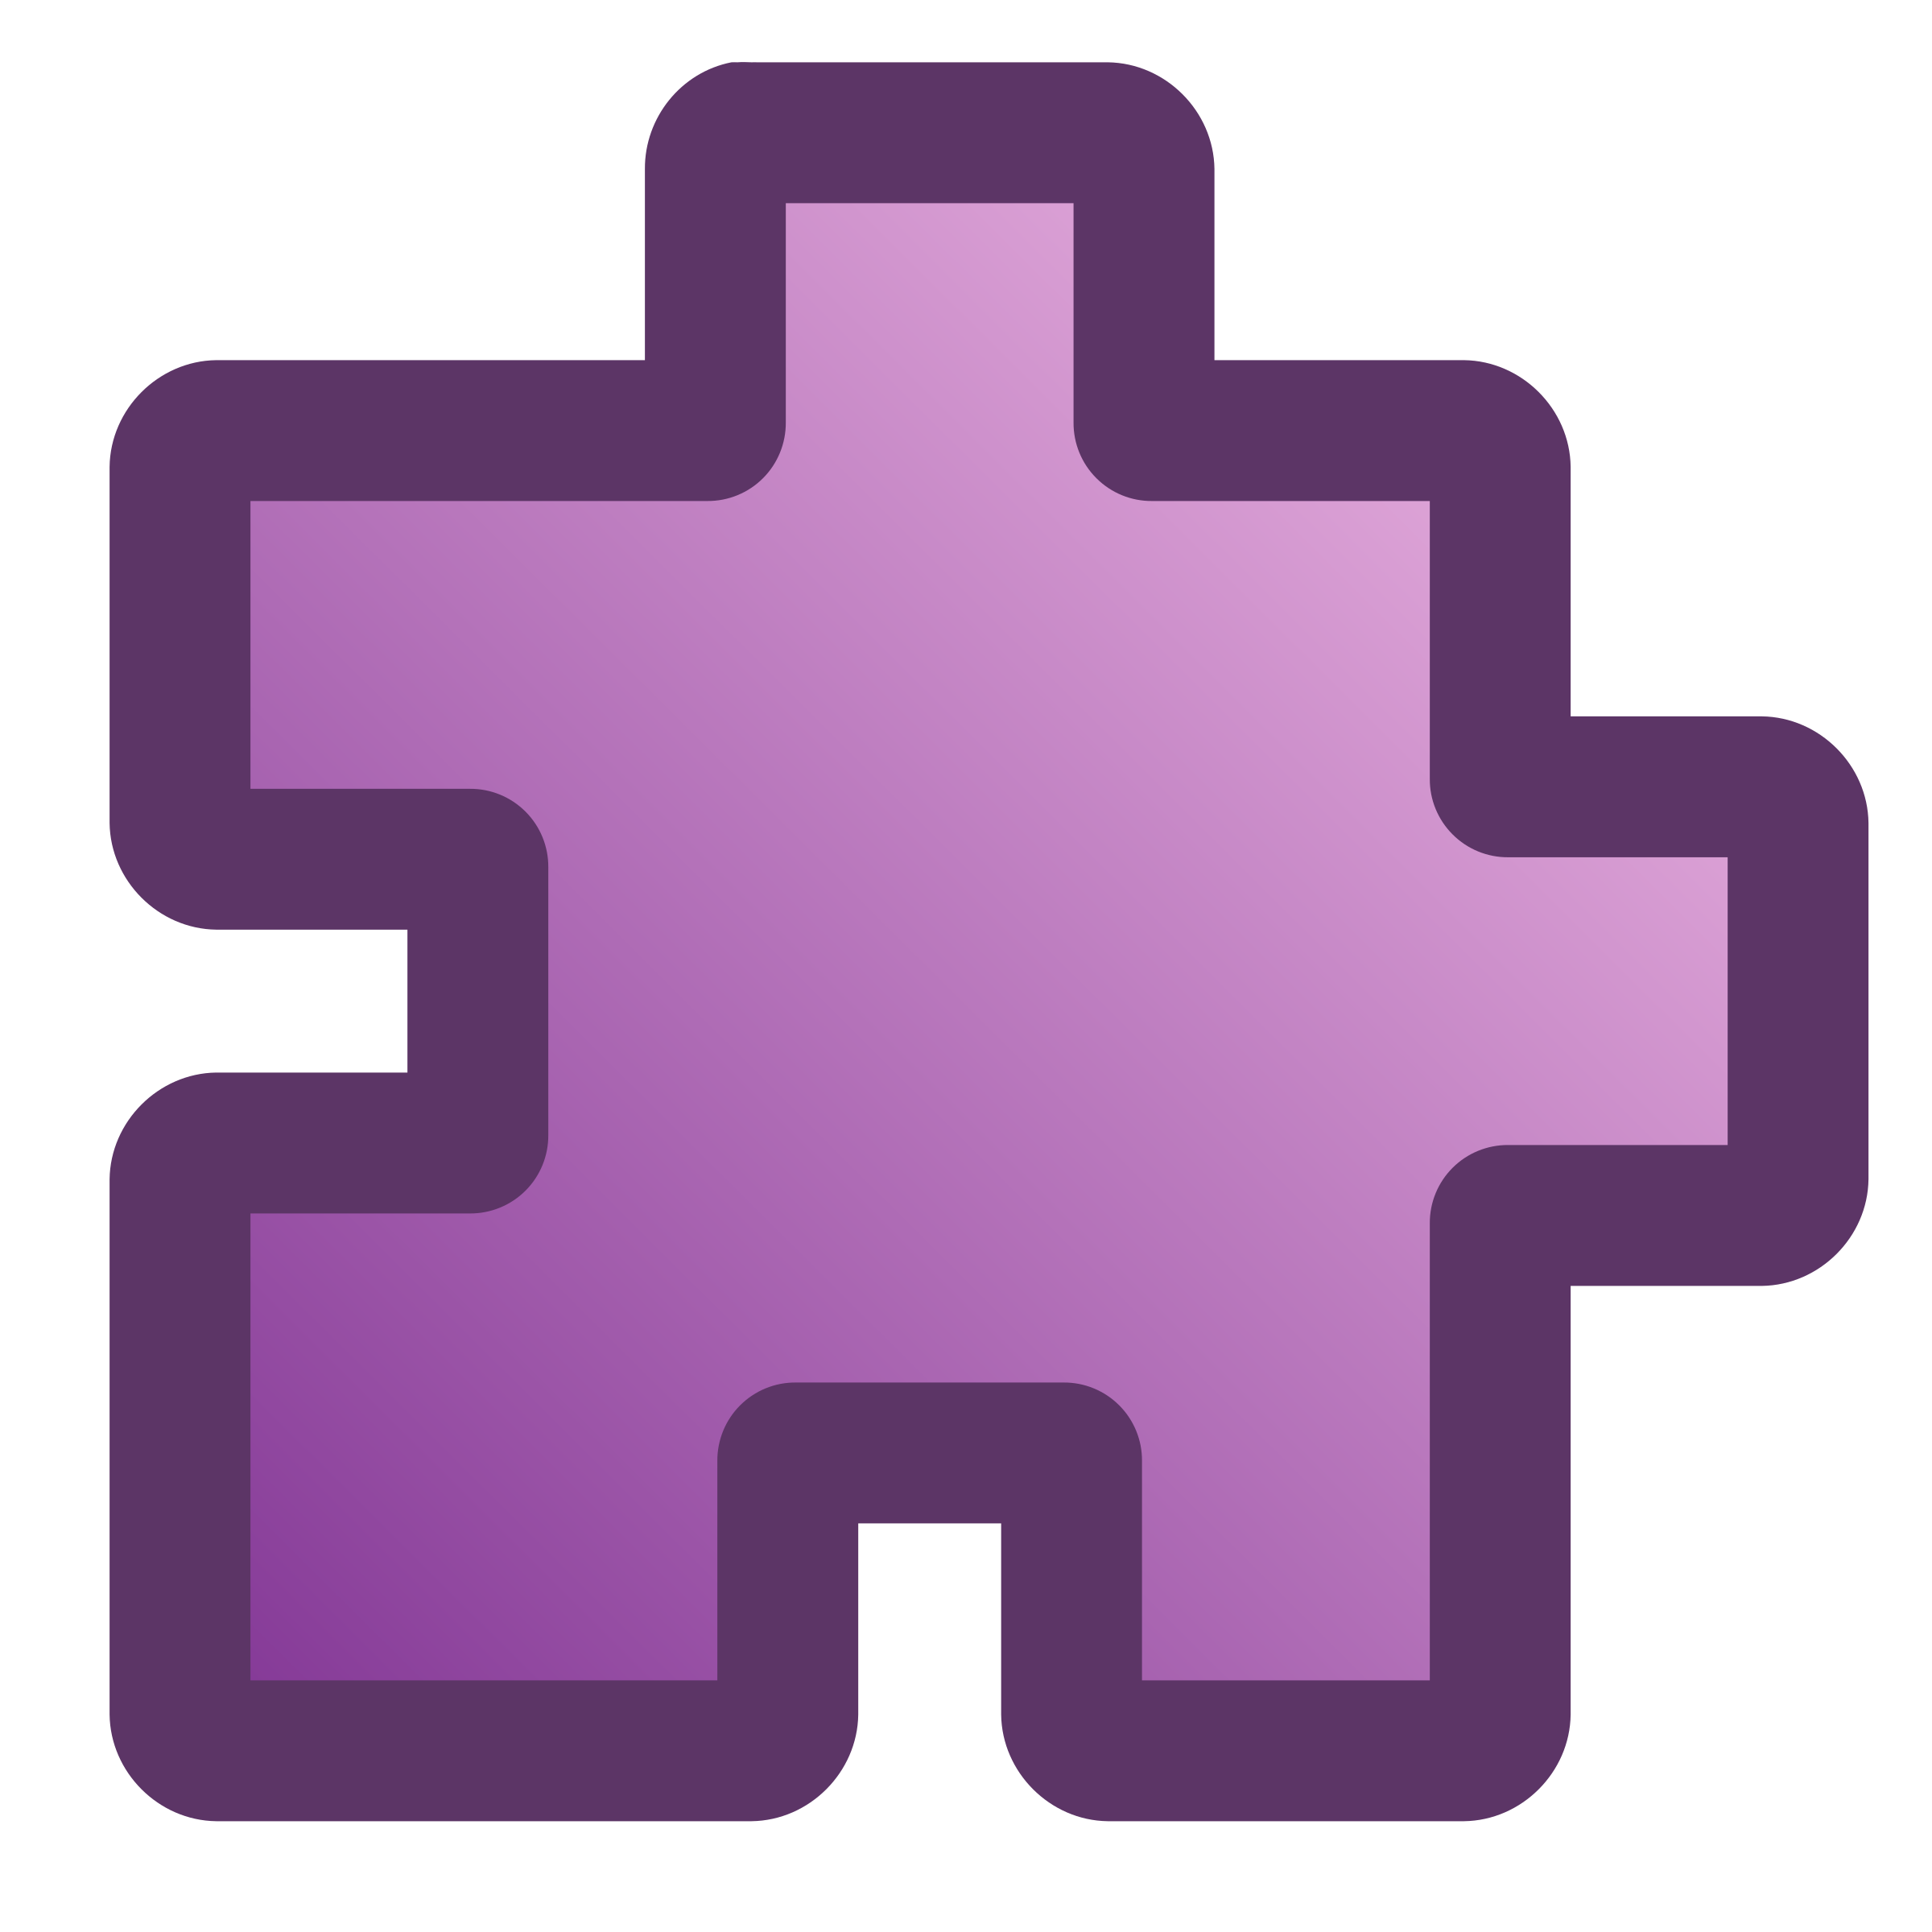 Puzzle clipart face. Purple free on dumielauxepices